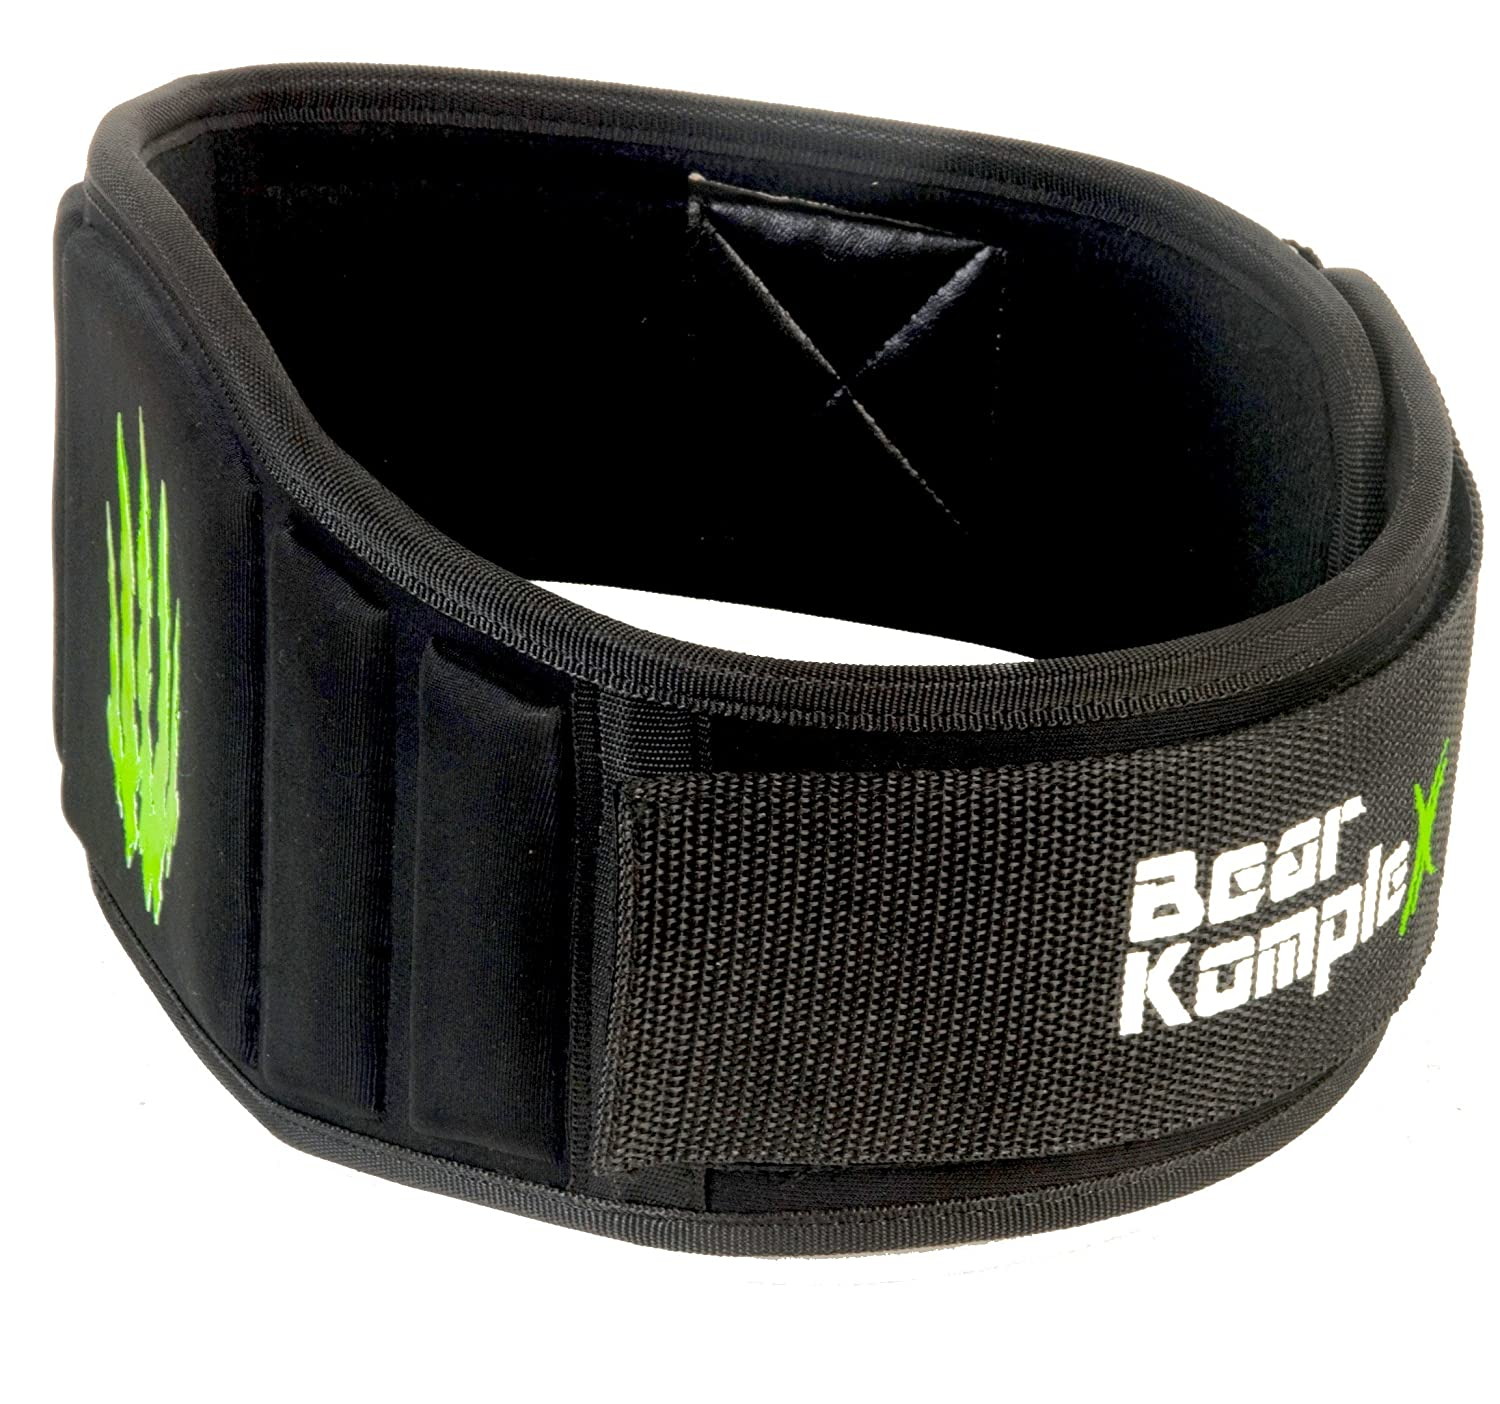 Bear KompleX Weight Lifting Belt